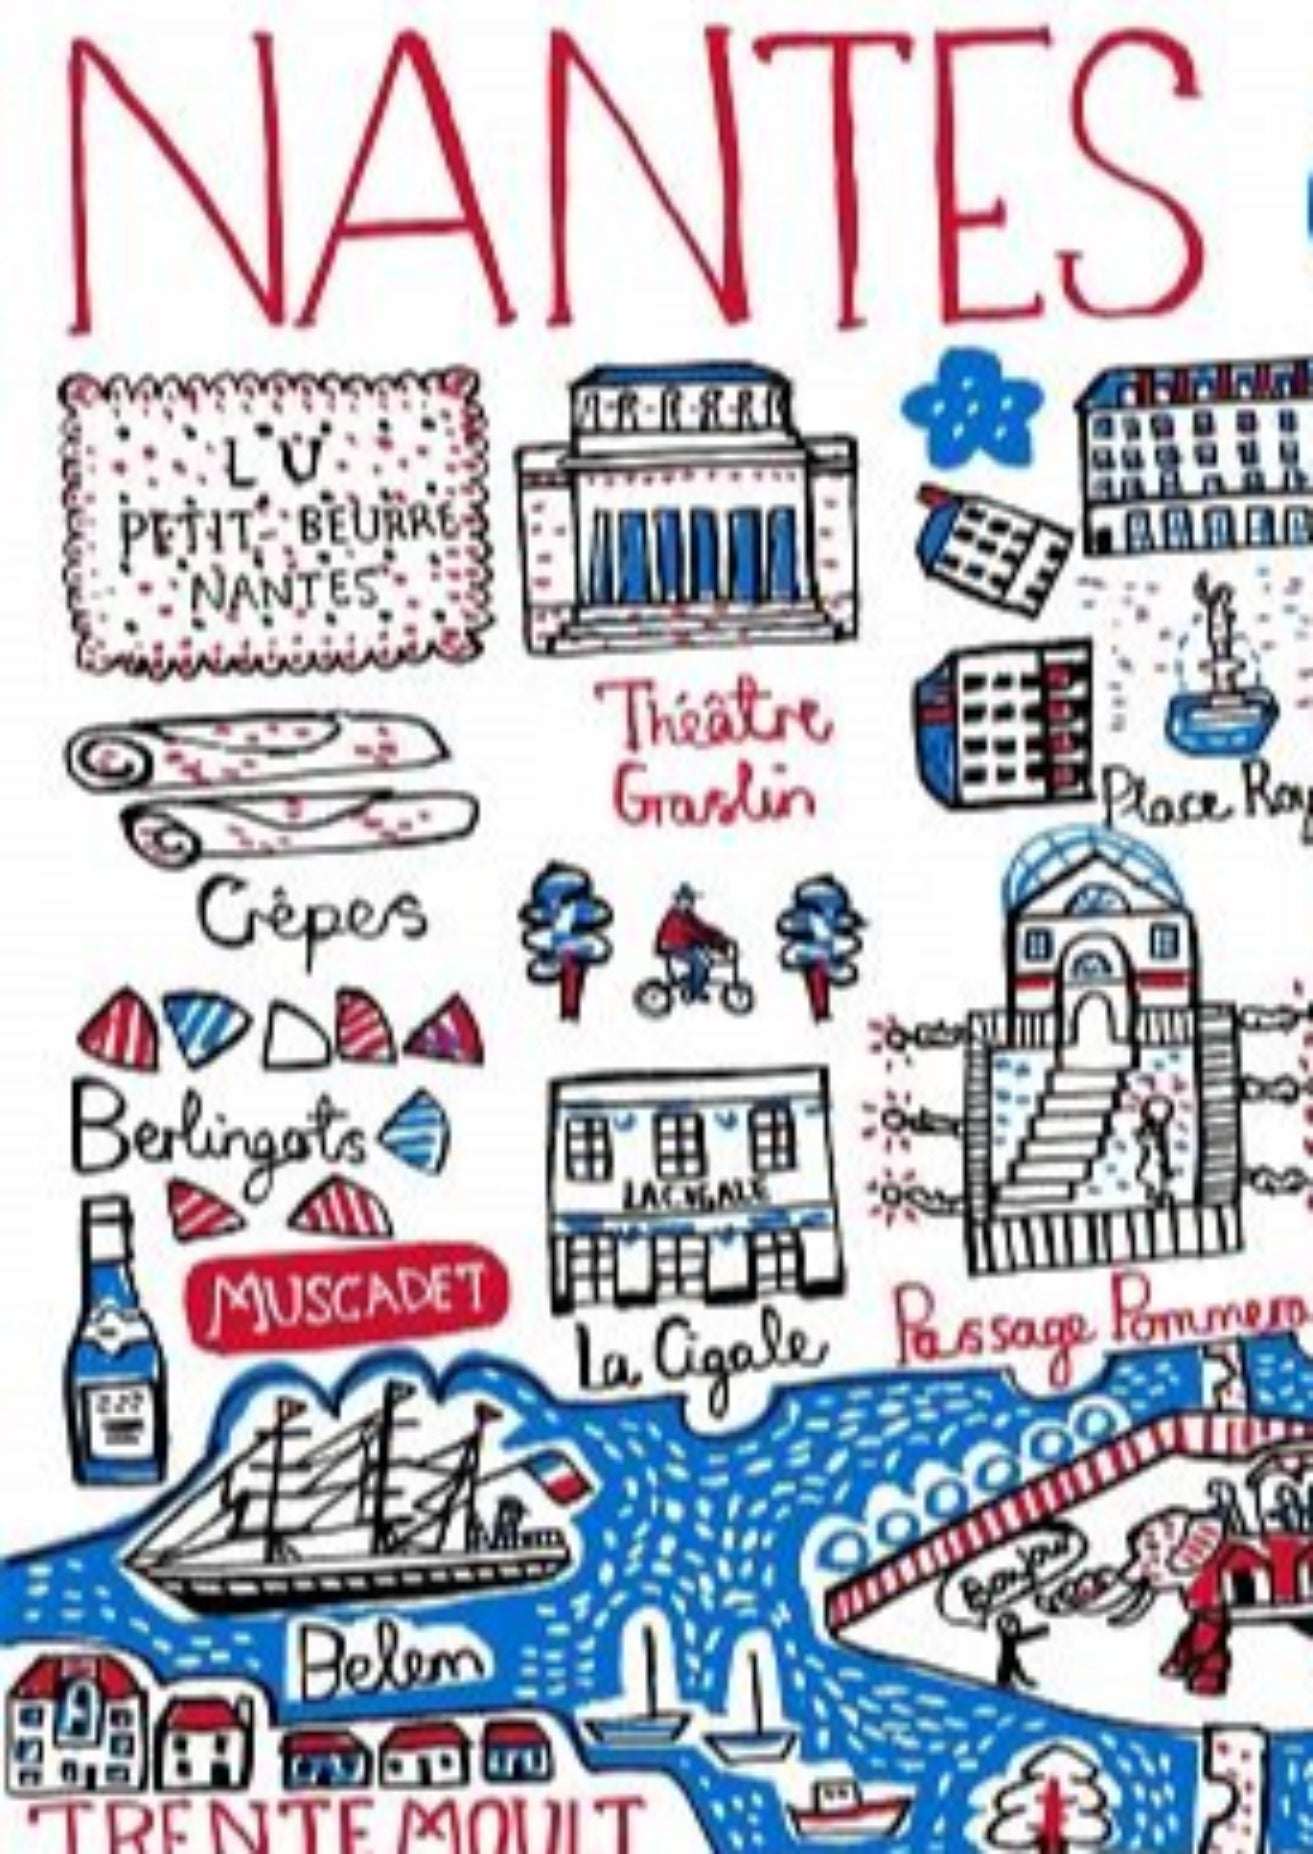 Nantes Art Print by British Travel Artist Julia Gash - Julia Gash